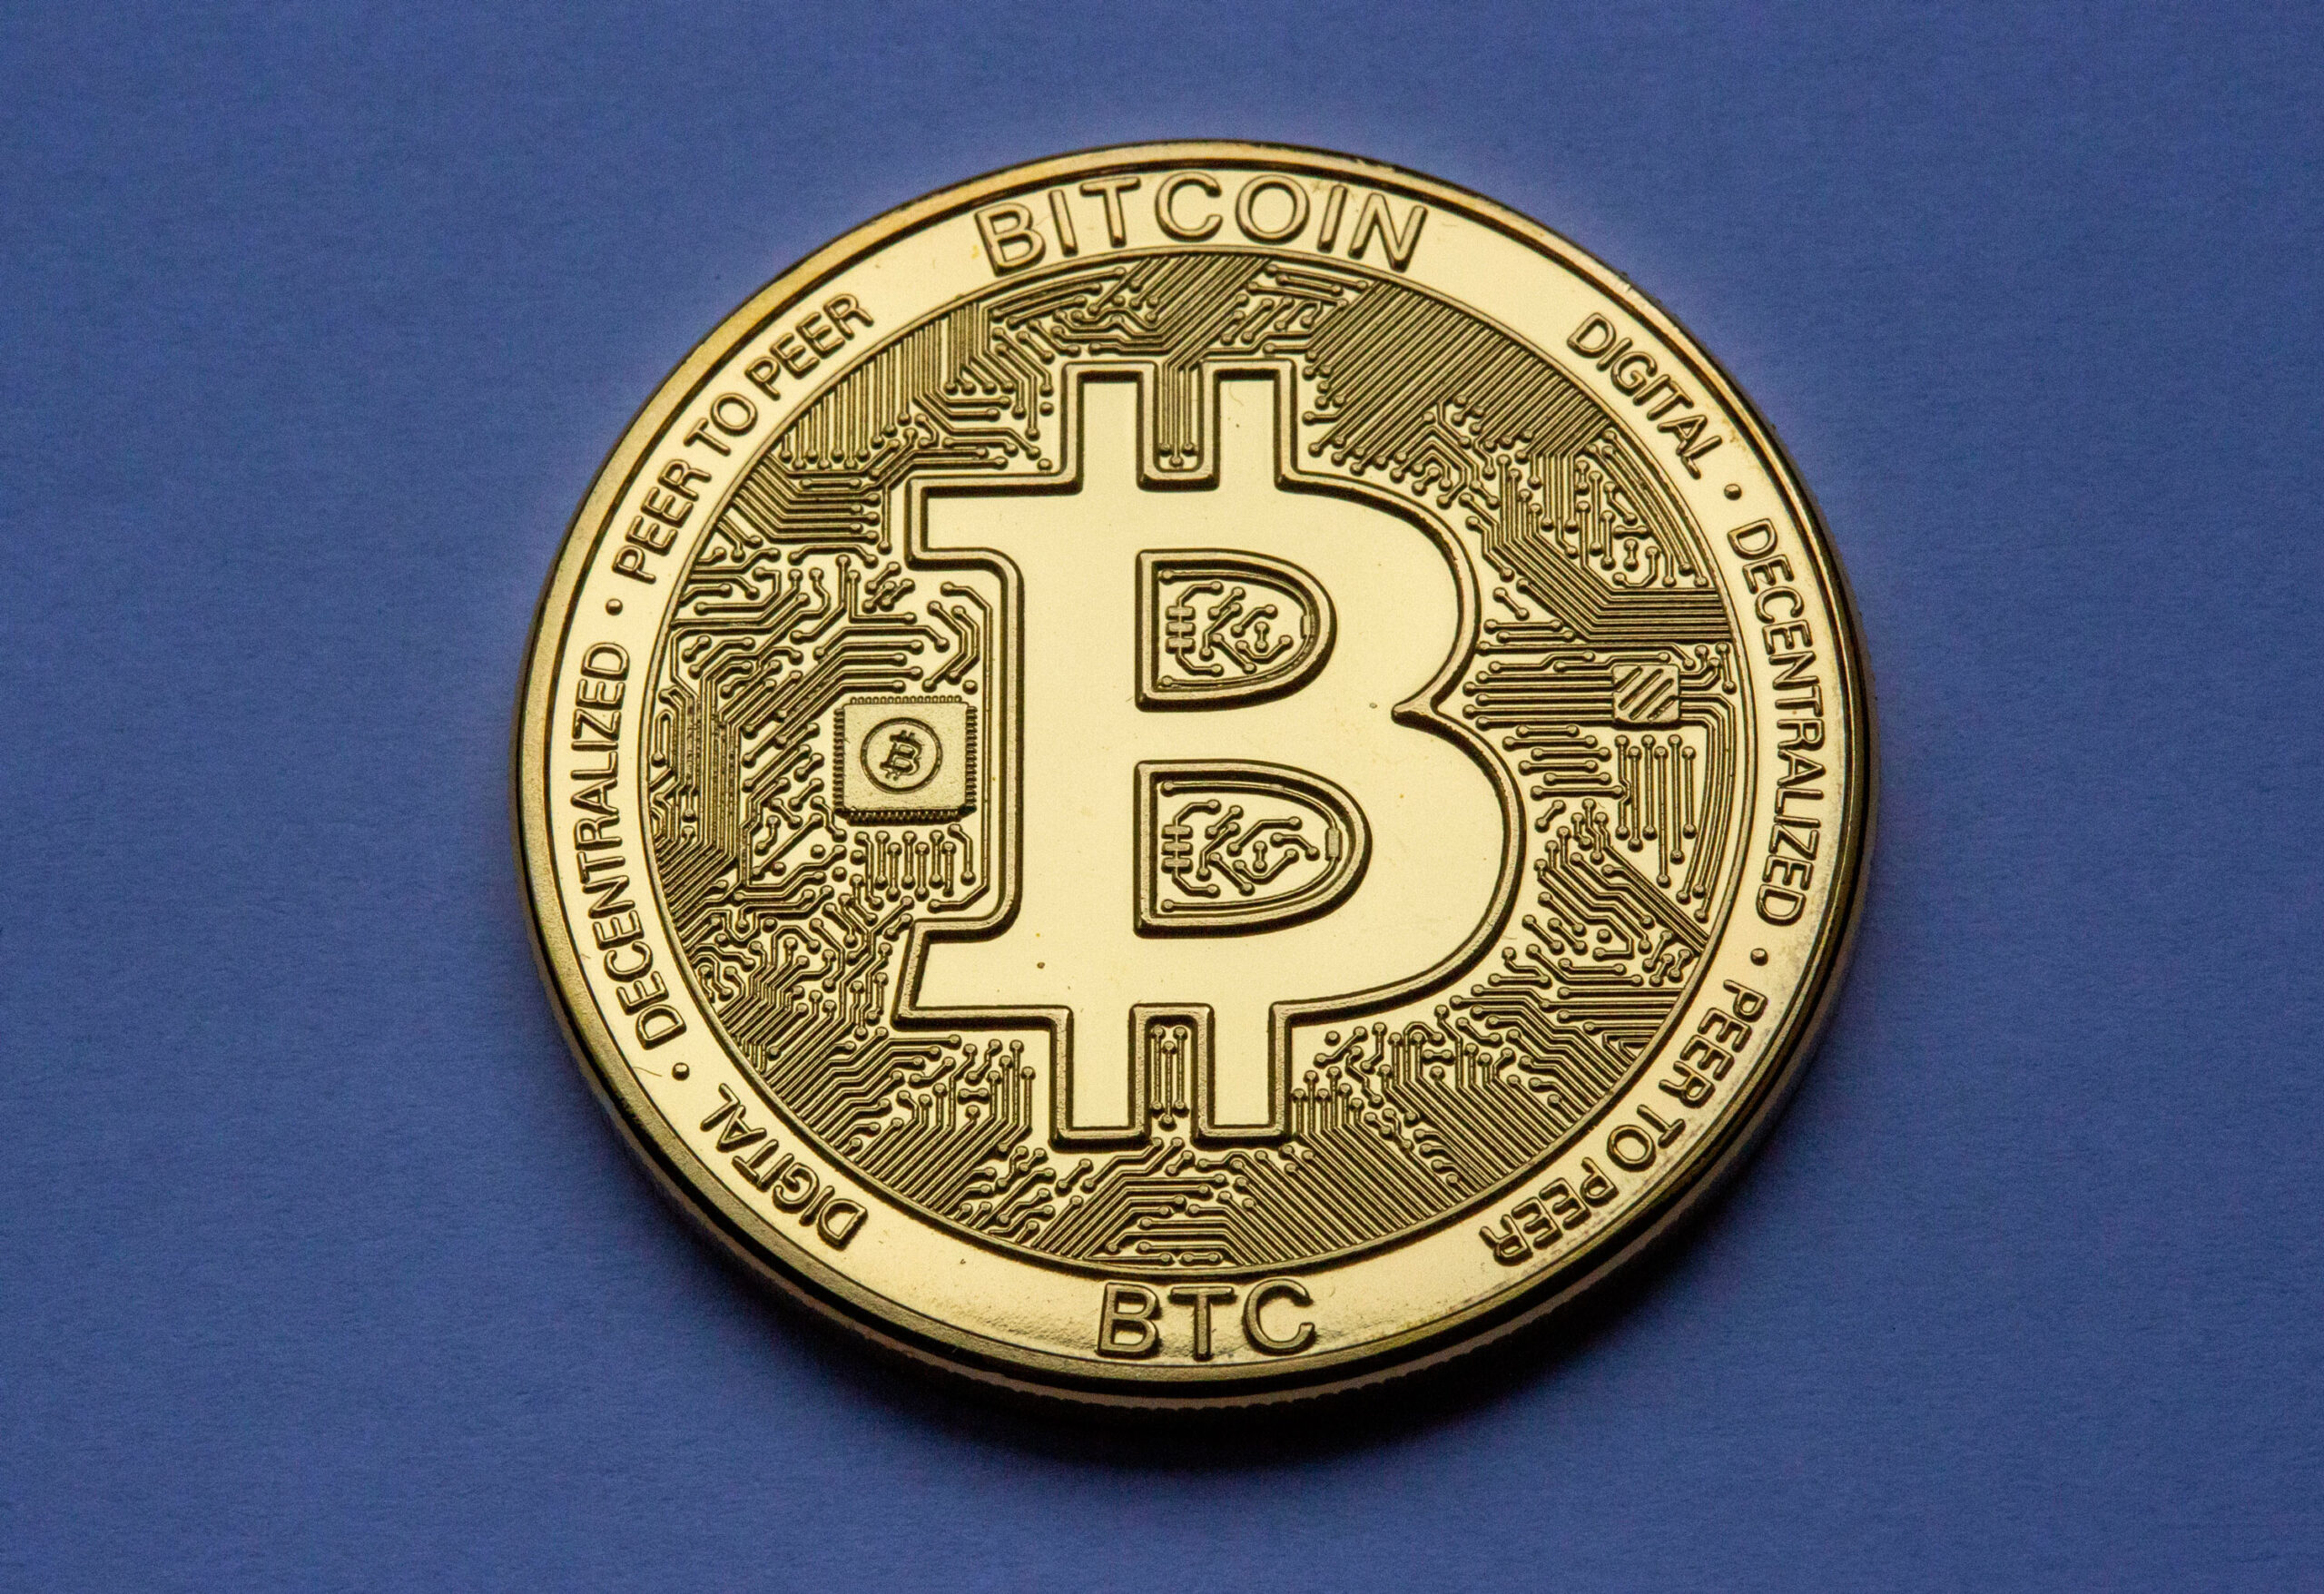 <i>Ulrich Baumgarten/Getty Images</i><br/>Bitcoin is falling as fears of the Evergrande crisis sweep through global markets. The digital currency has dropped 5.7% in the last 24 hours